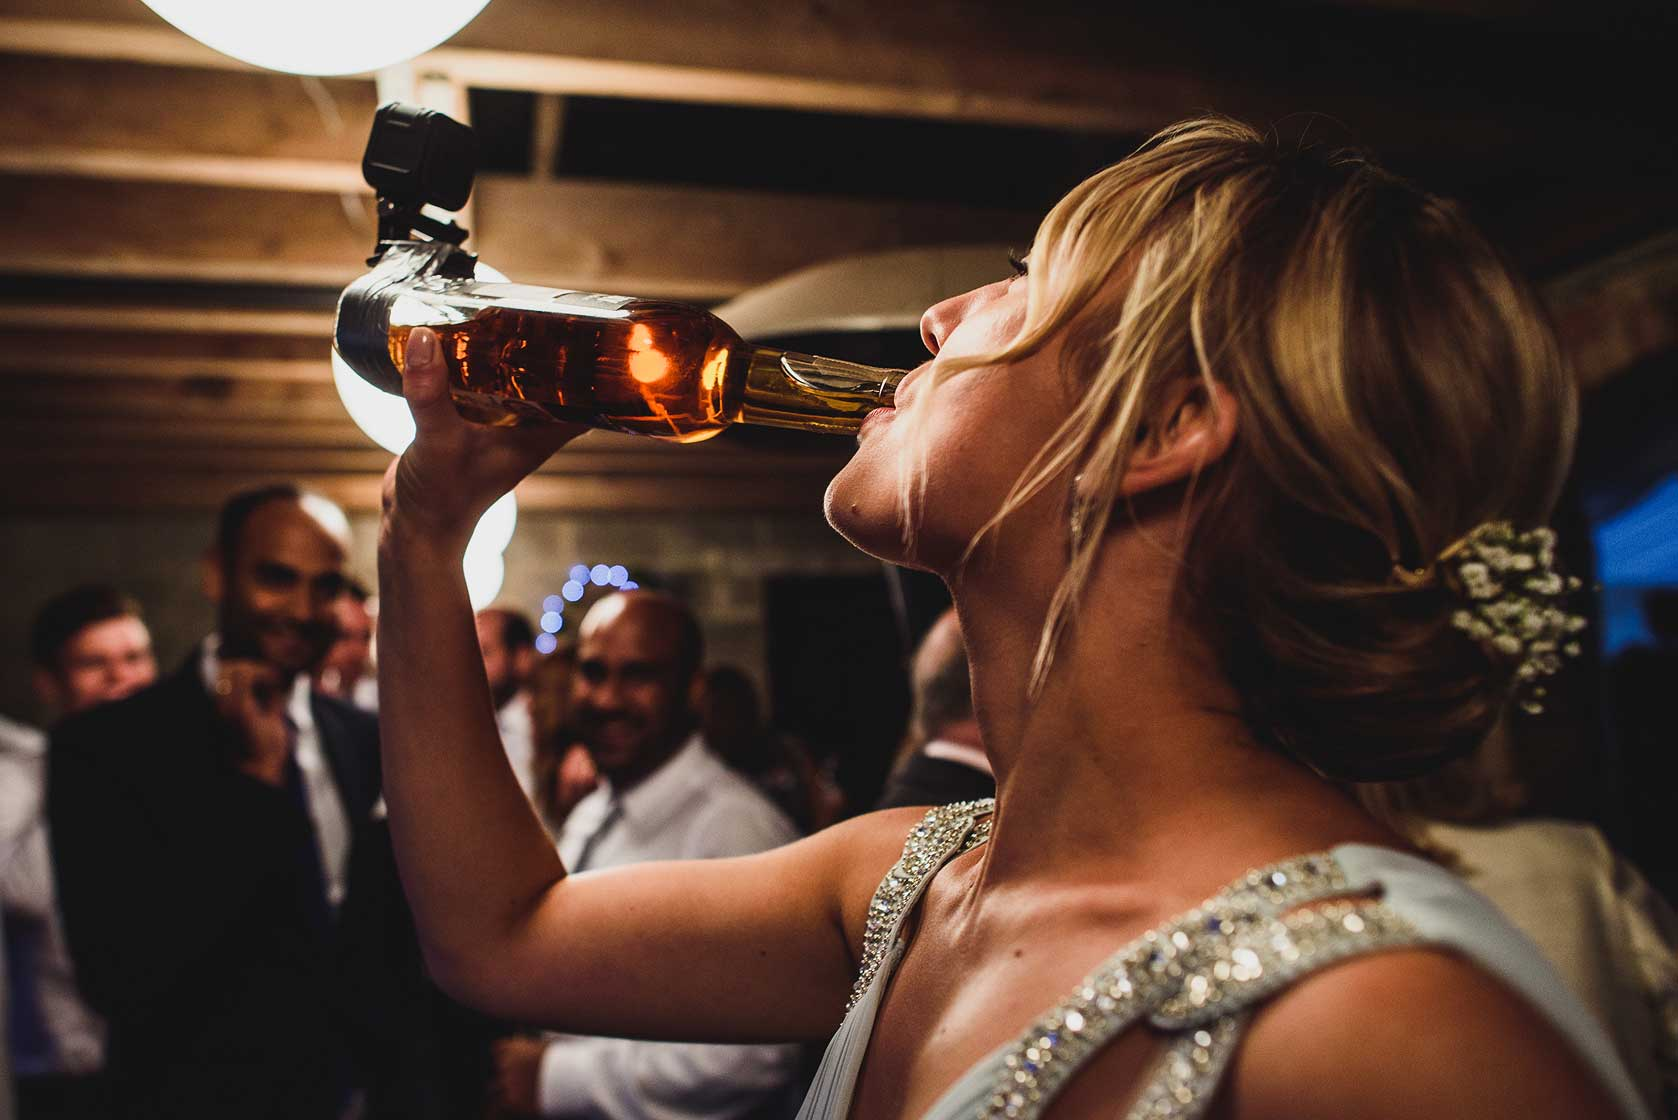 Reportage Wedding Photography in Yorkshire